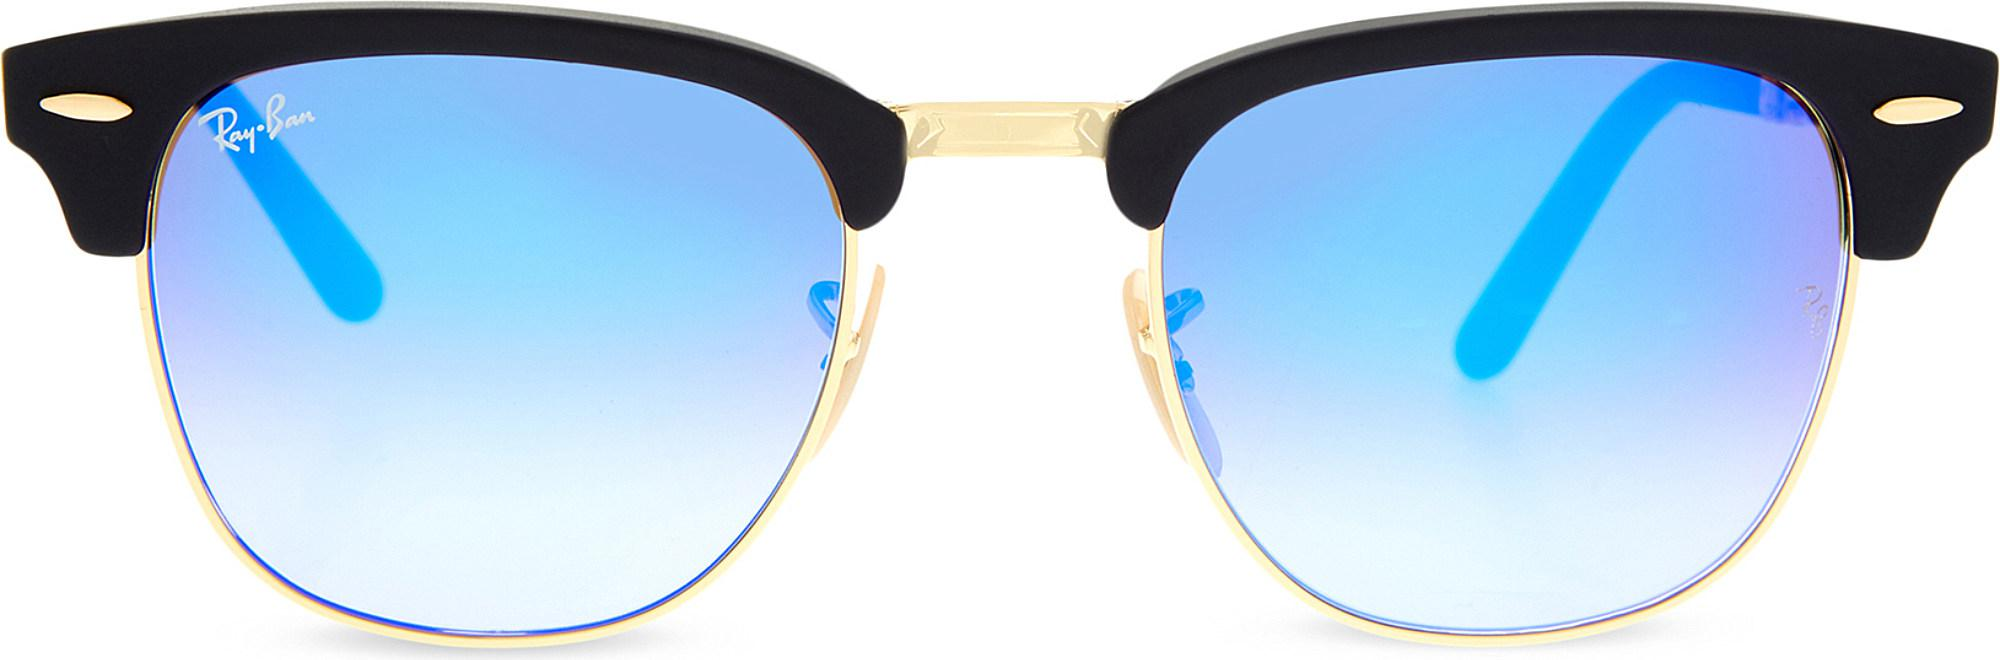 493911df86 Ray-Ban. Women s Rb2176 Clubmaster Folding Sunglasses